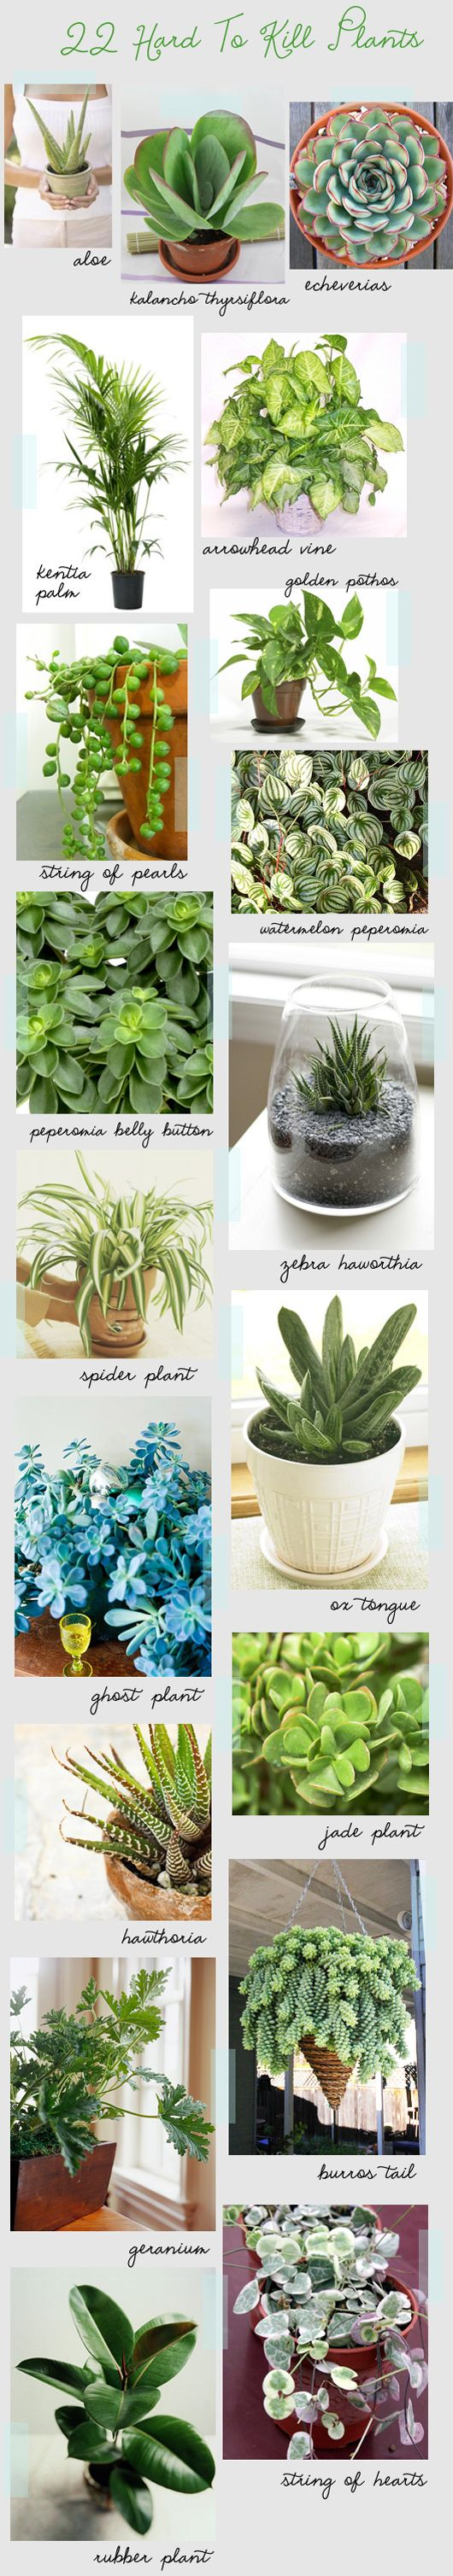 22HardToKillHousePlants Wow I am ashamed to say I have killed more than half of these -- the only ones I haven't killed are the ones I haven't owned! And I thought I was a good gardener!